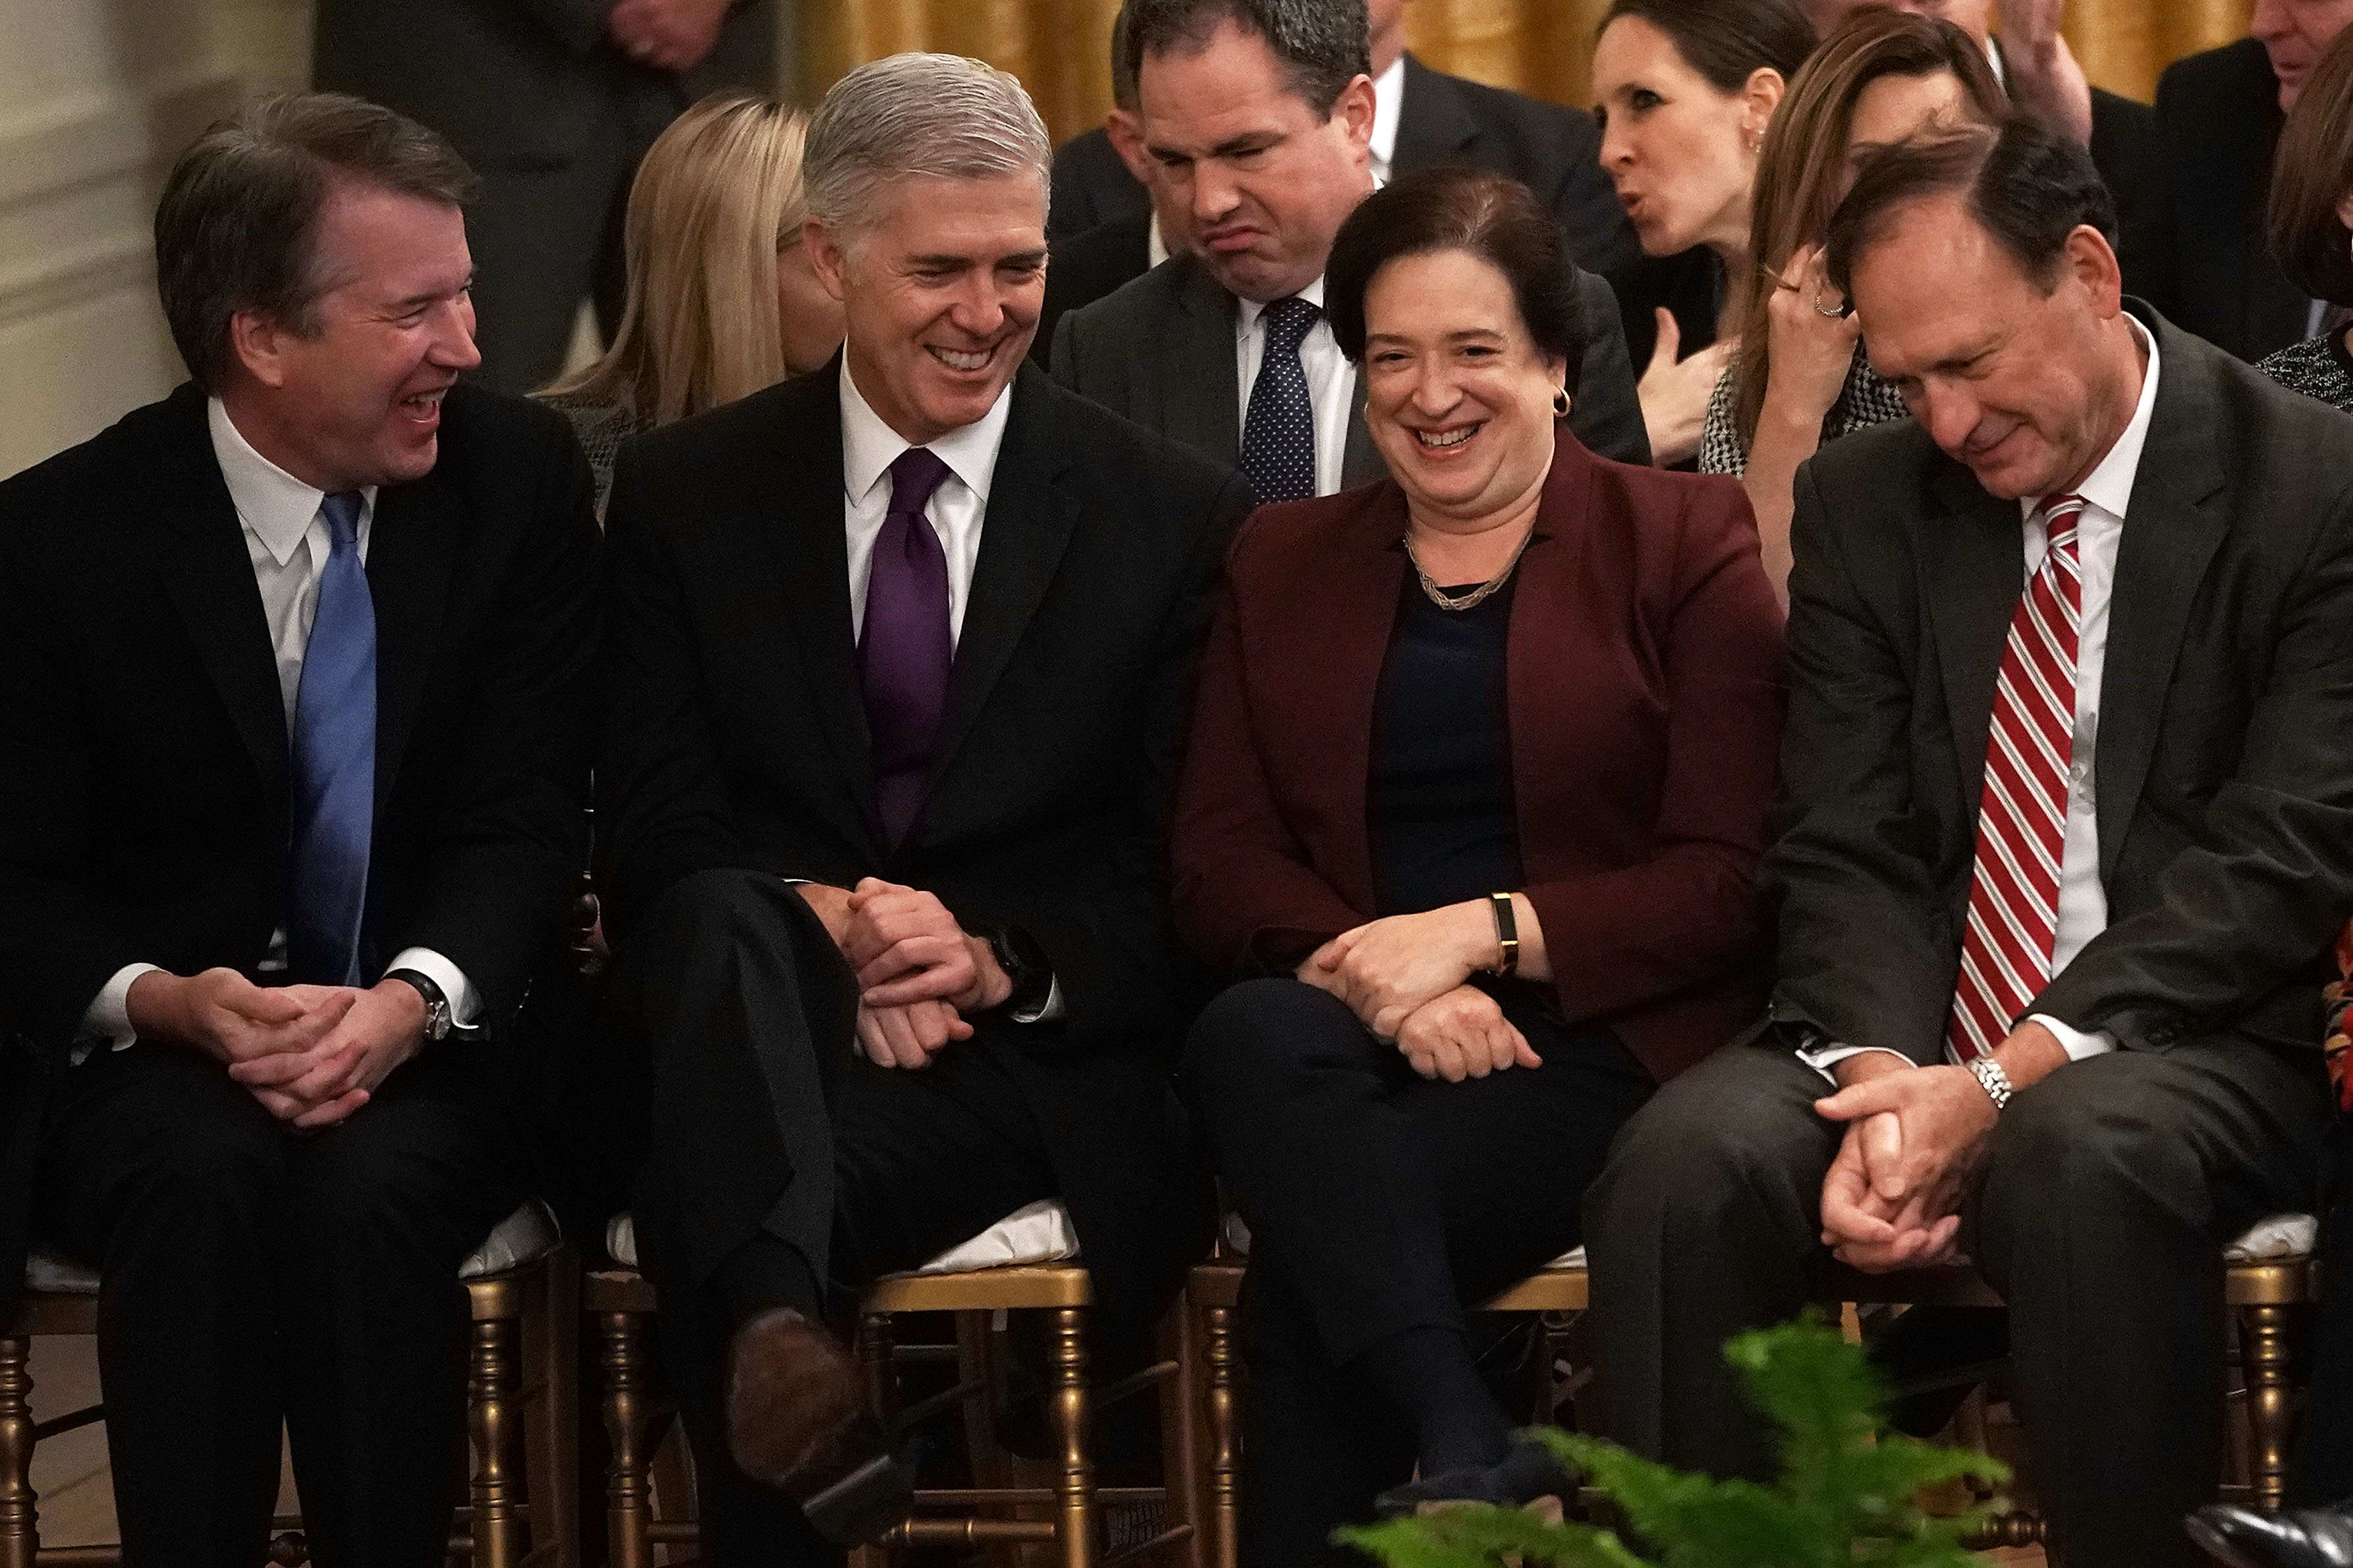 (L-R) Justices Brett Kavanaugh, Neil Gorsuch, Elena Kagan, and Samuel Alito at the White House on November 16, 2018. (Alex Wong/Getty Images)